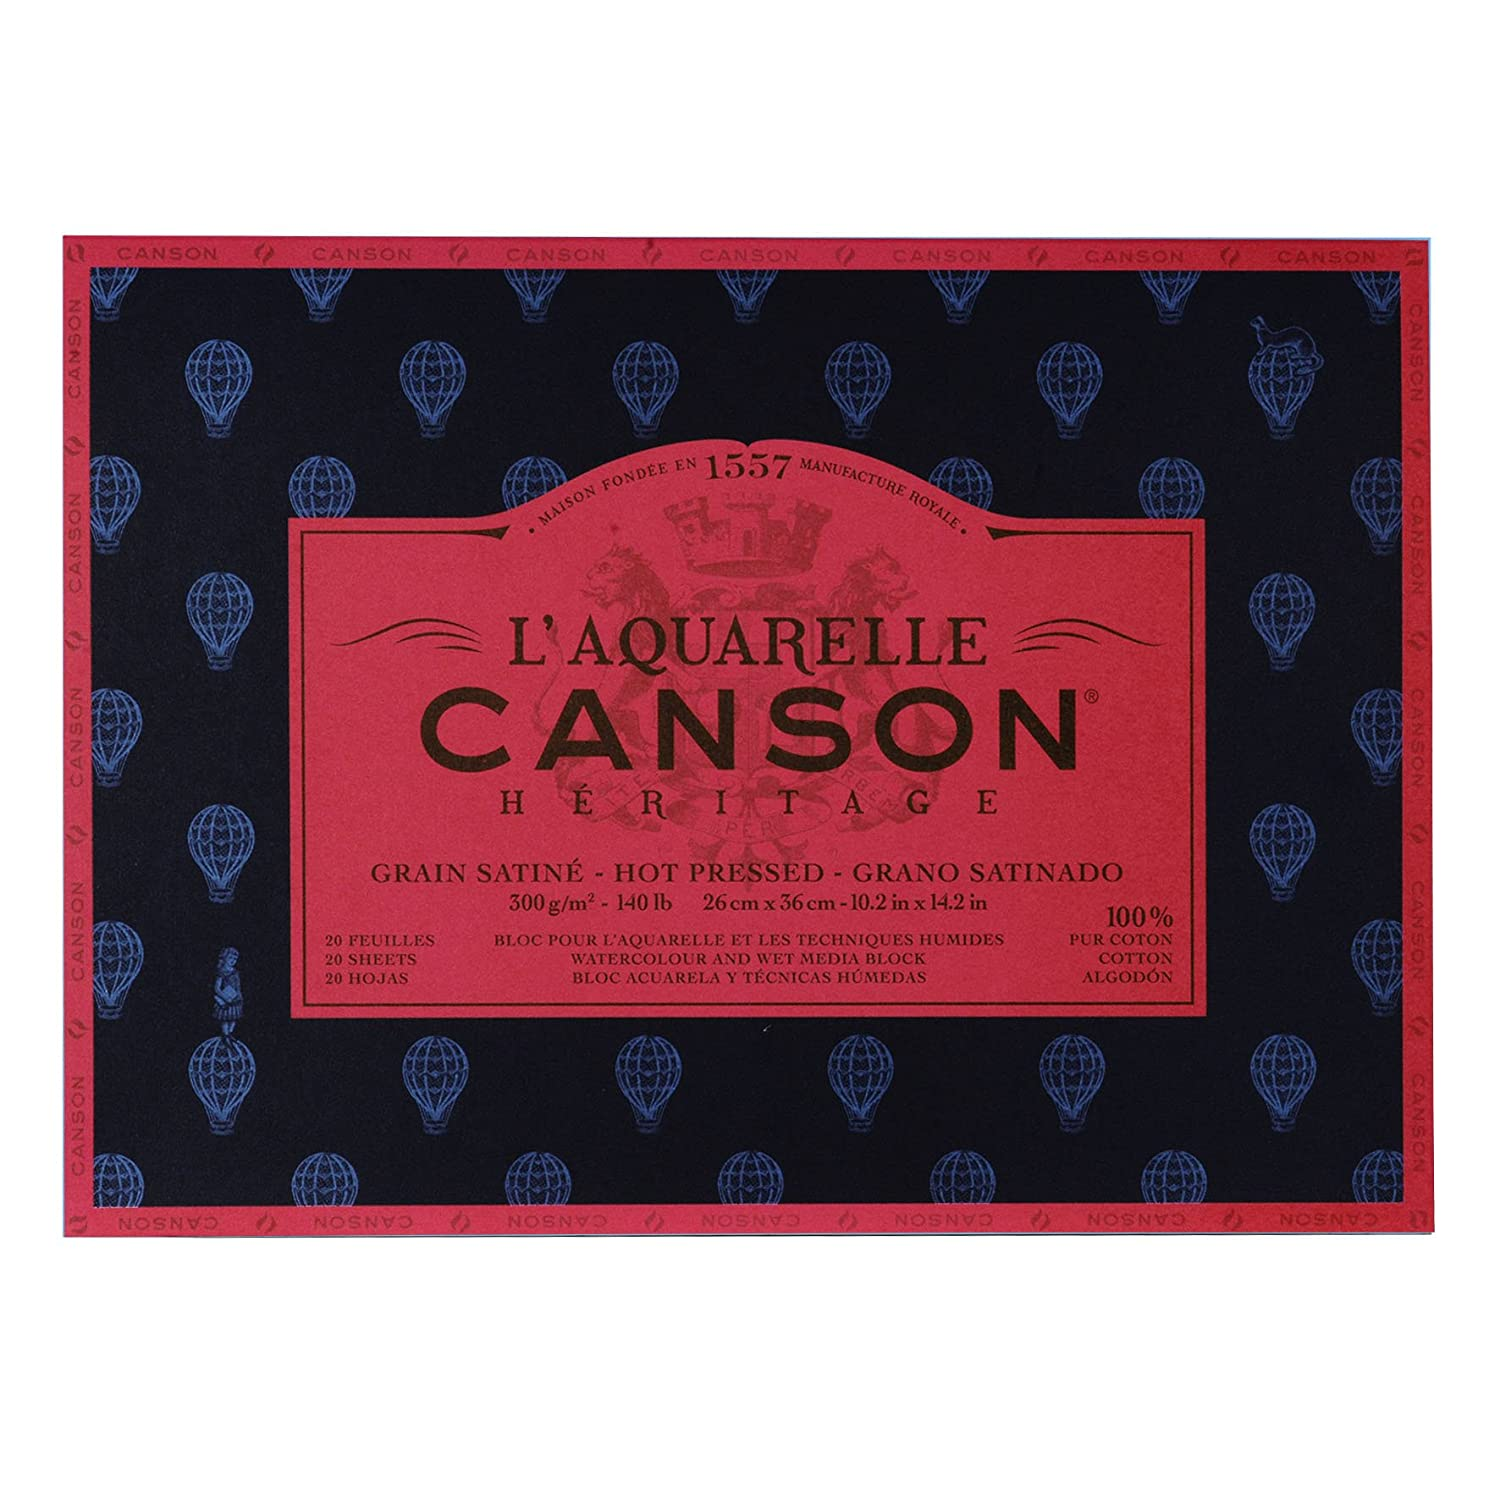 Canson Heritage Watercolour Pad, Sticks, 4 Sides, 20 Sheets, Satin Grain Satin Finish 26 x 36 cm 100720008